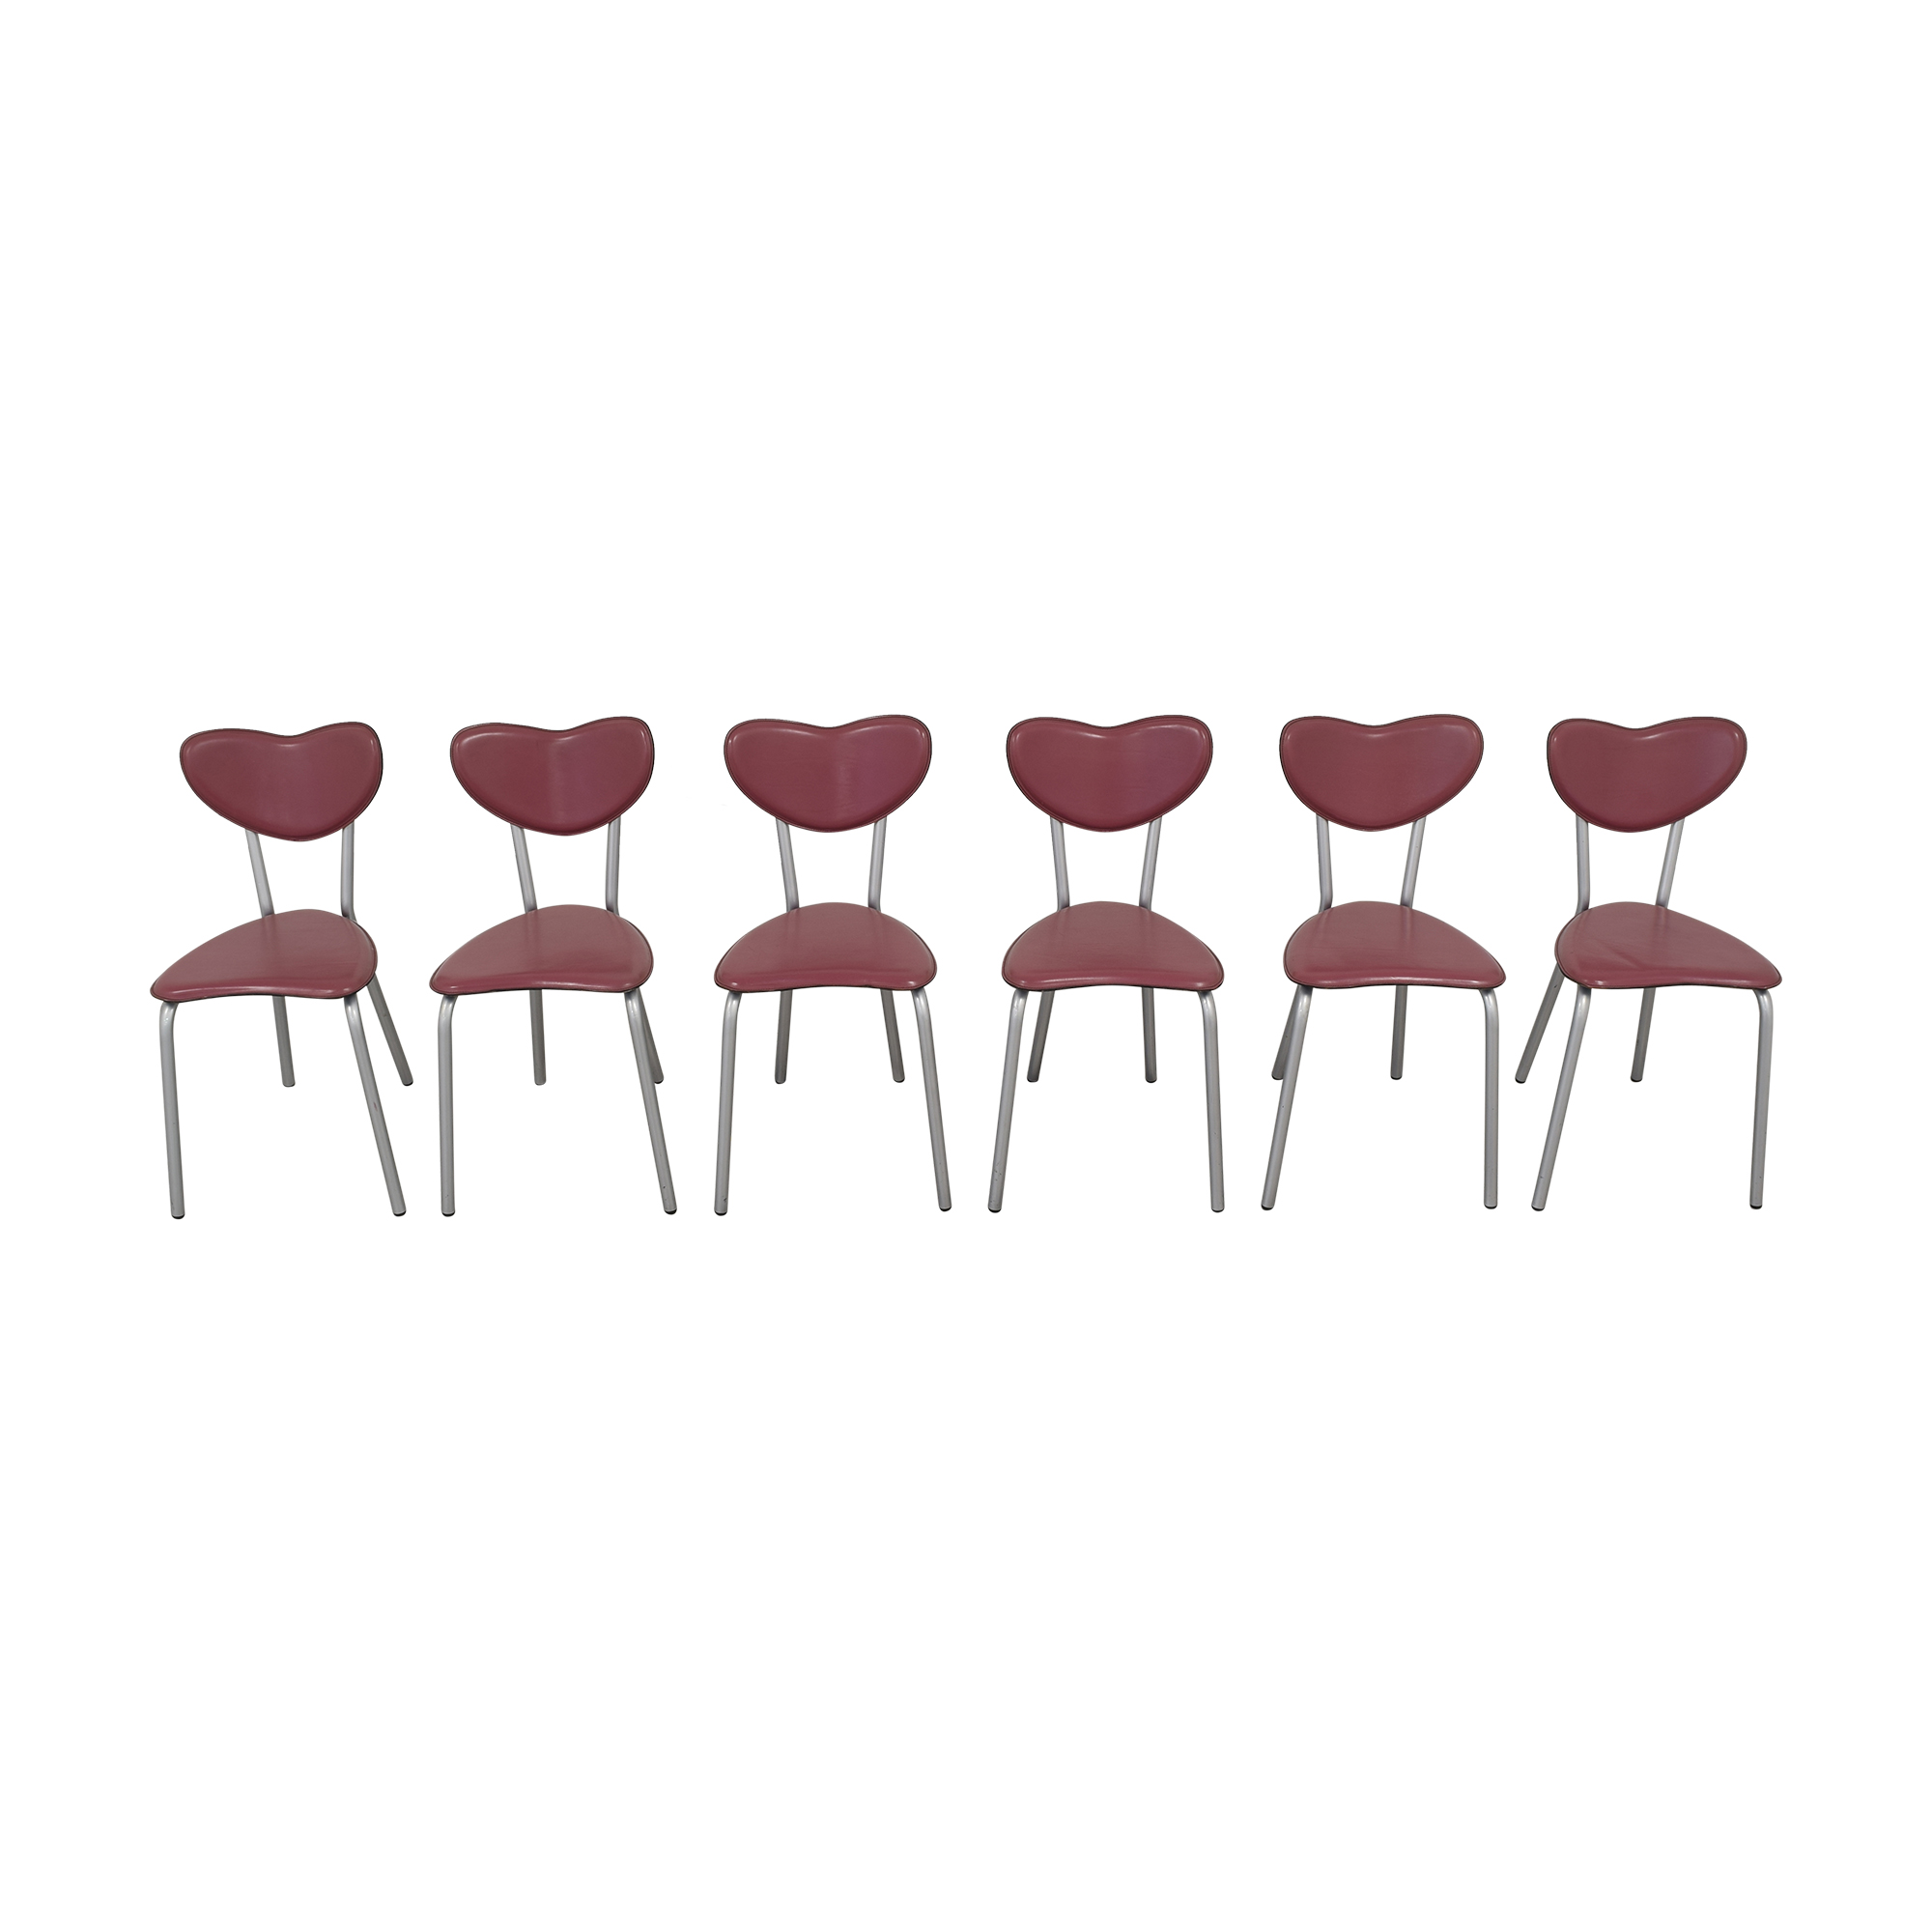 buy Pellizzoni Modern Dining Chairs Pellizzoni Dining Chairs